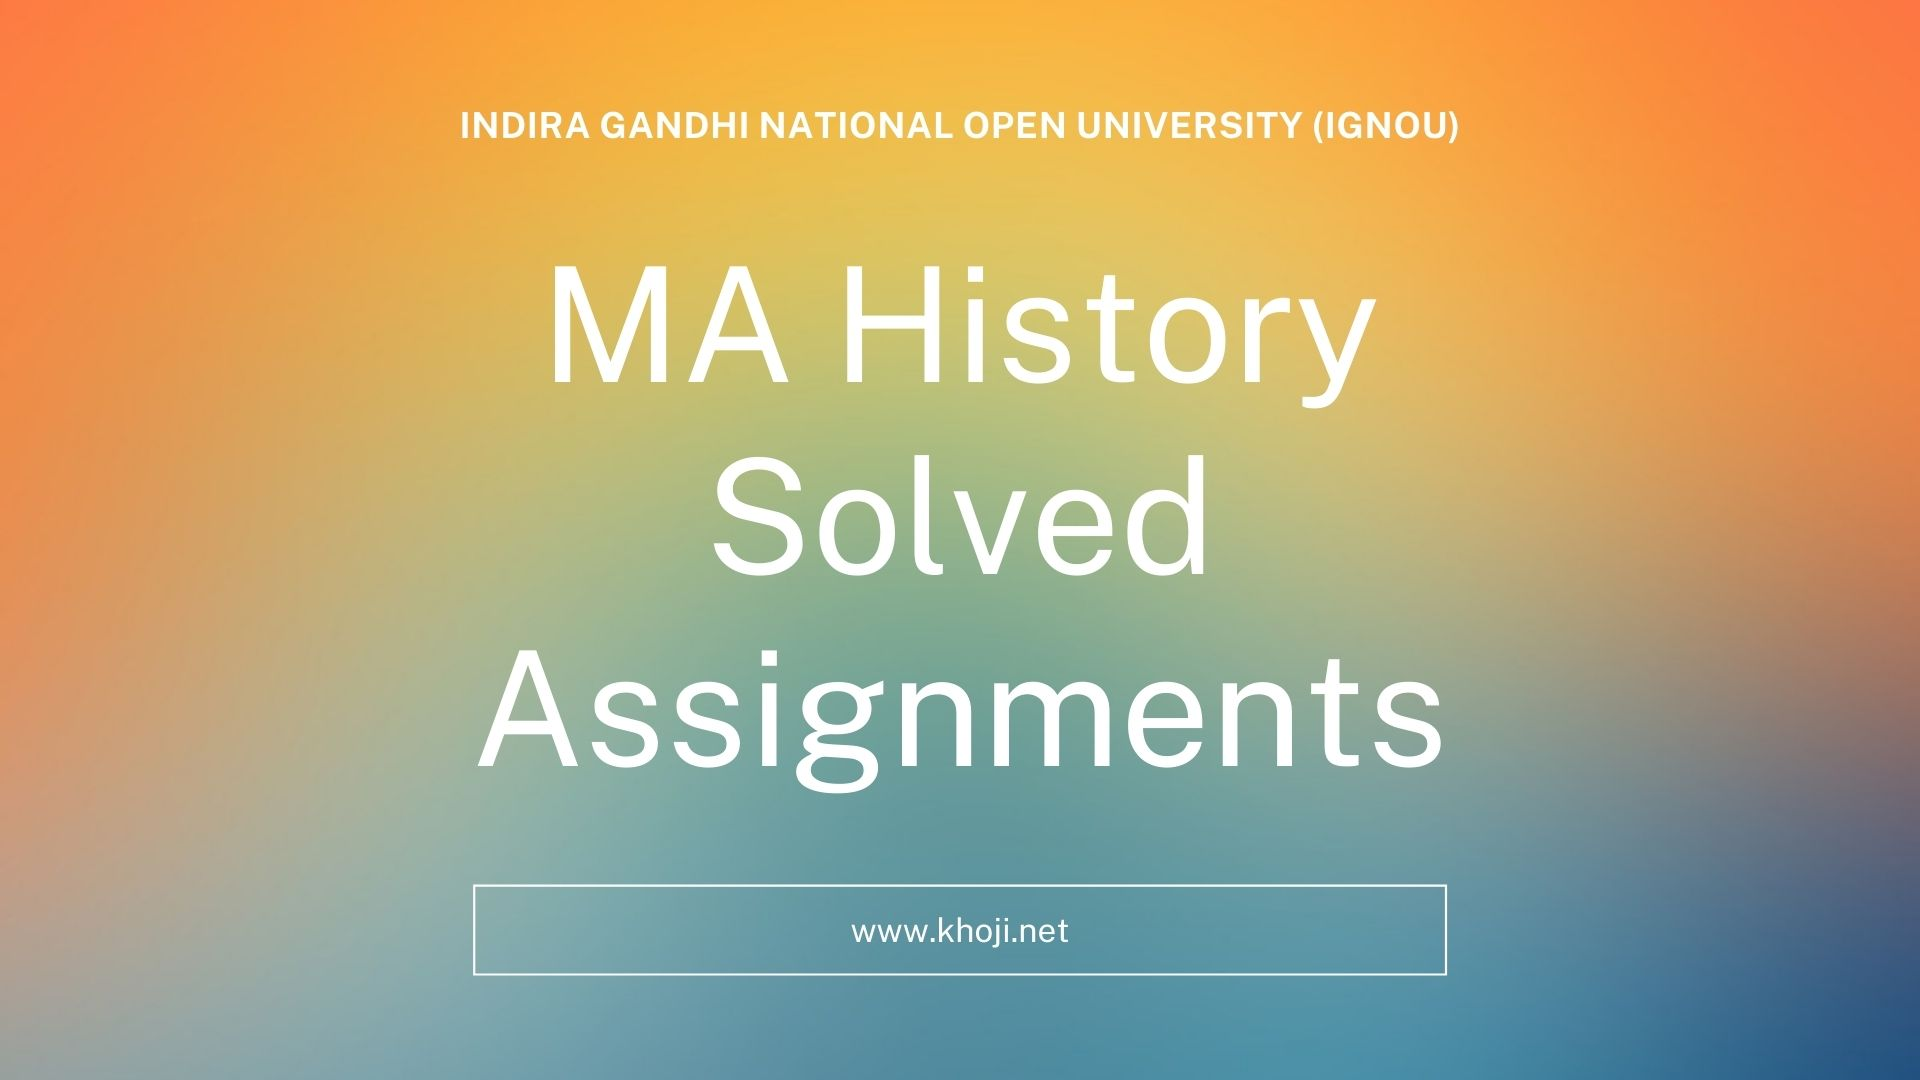 IGNOU MA History Solved Assignments KHOJINET